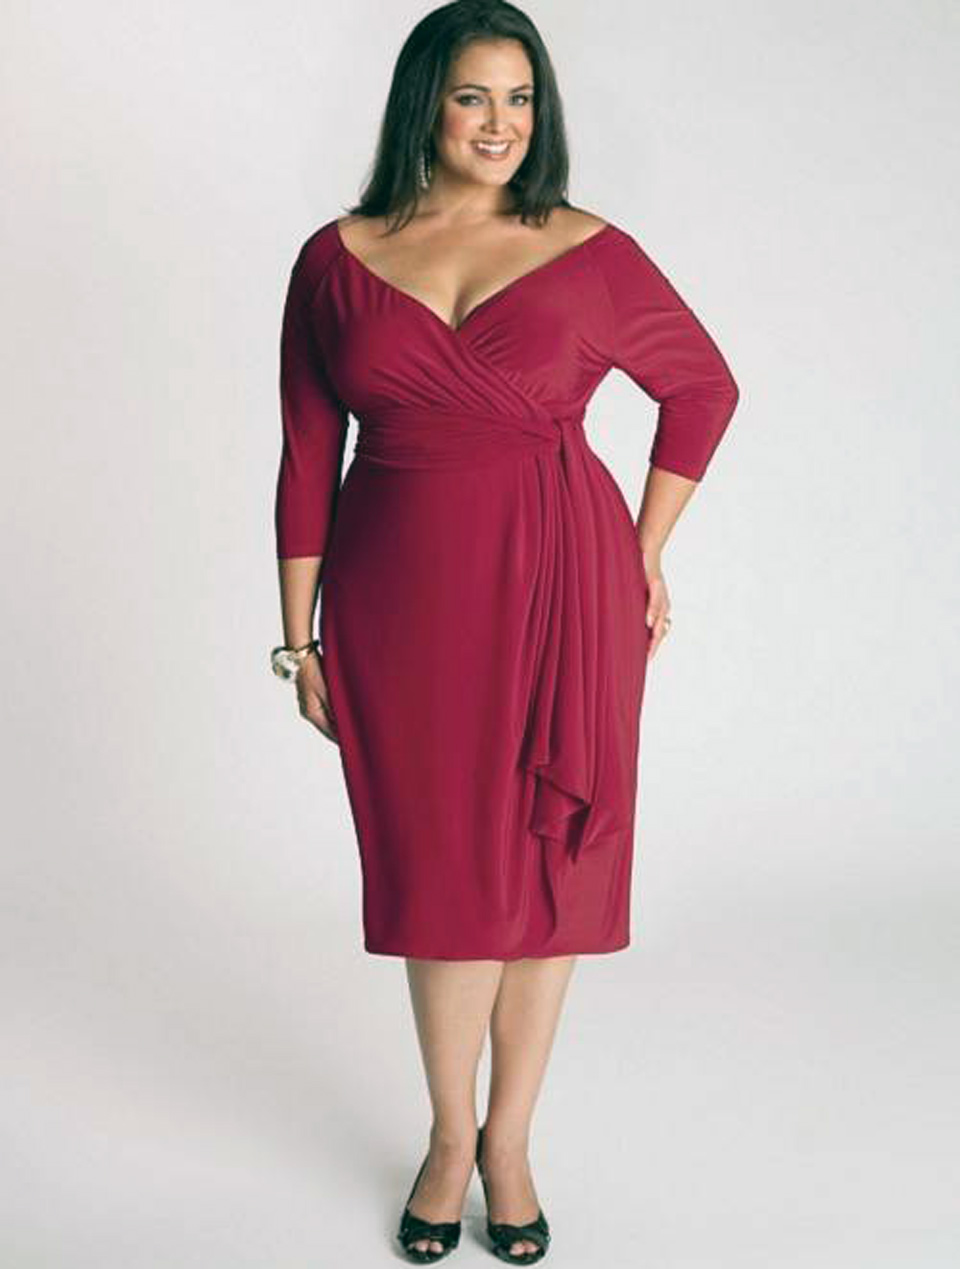 formal plus size dresses macy's  shopping guide we are